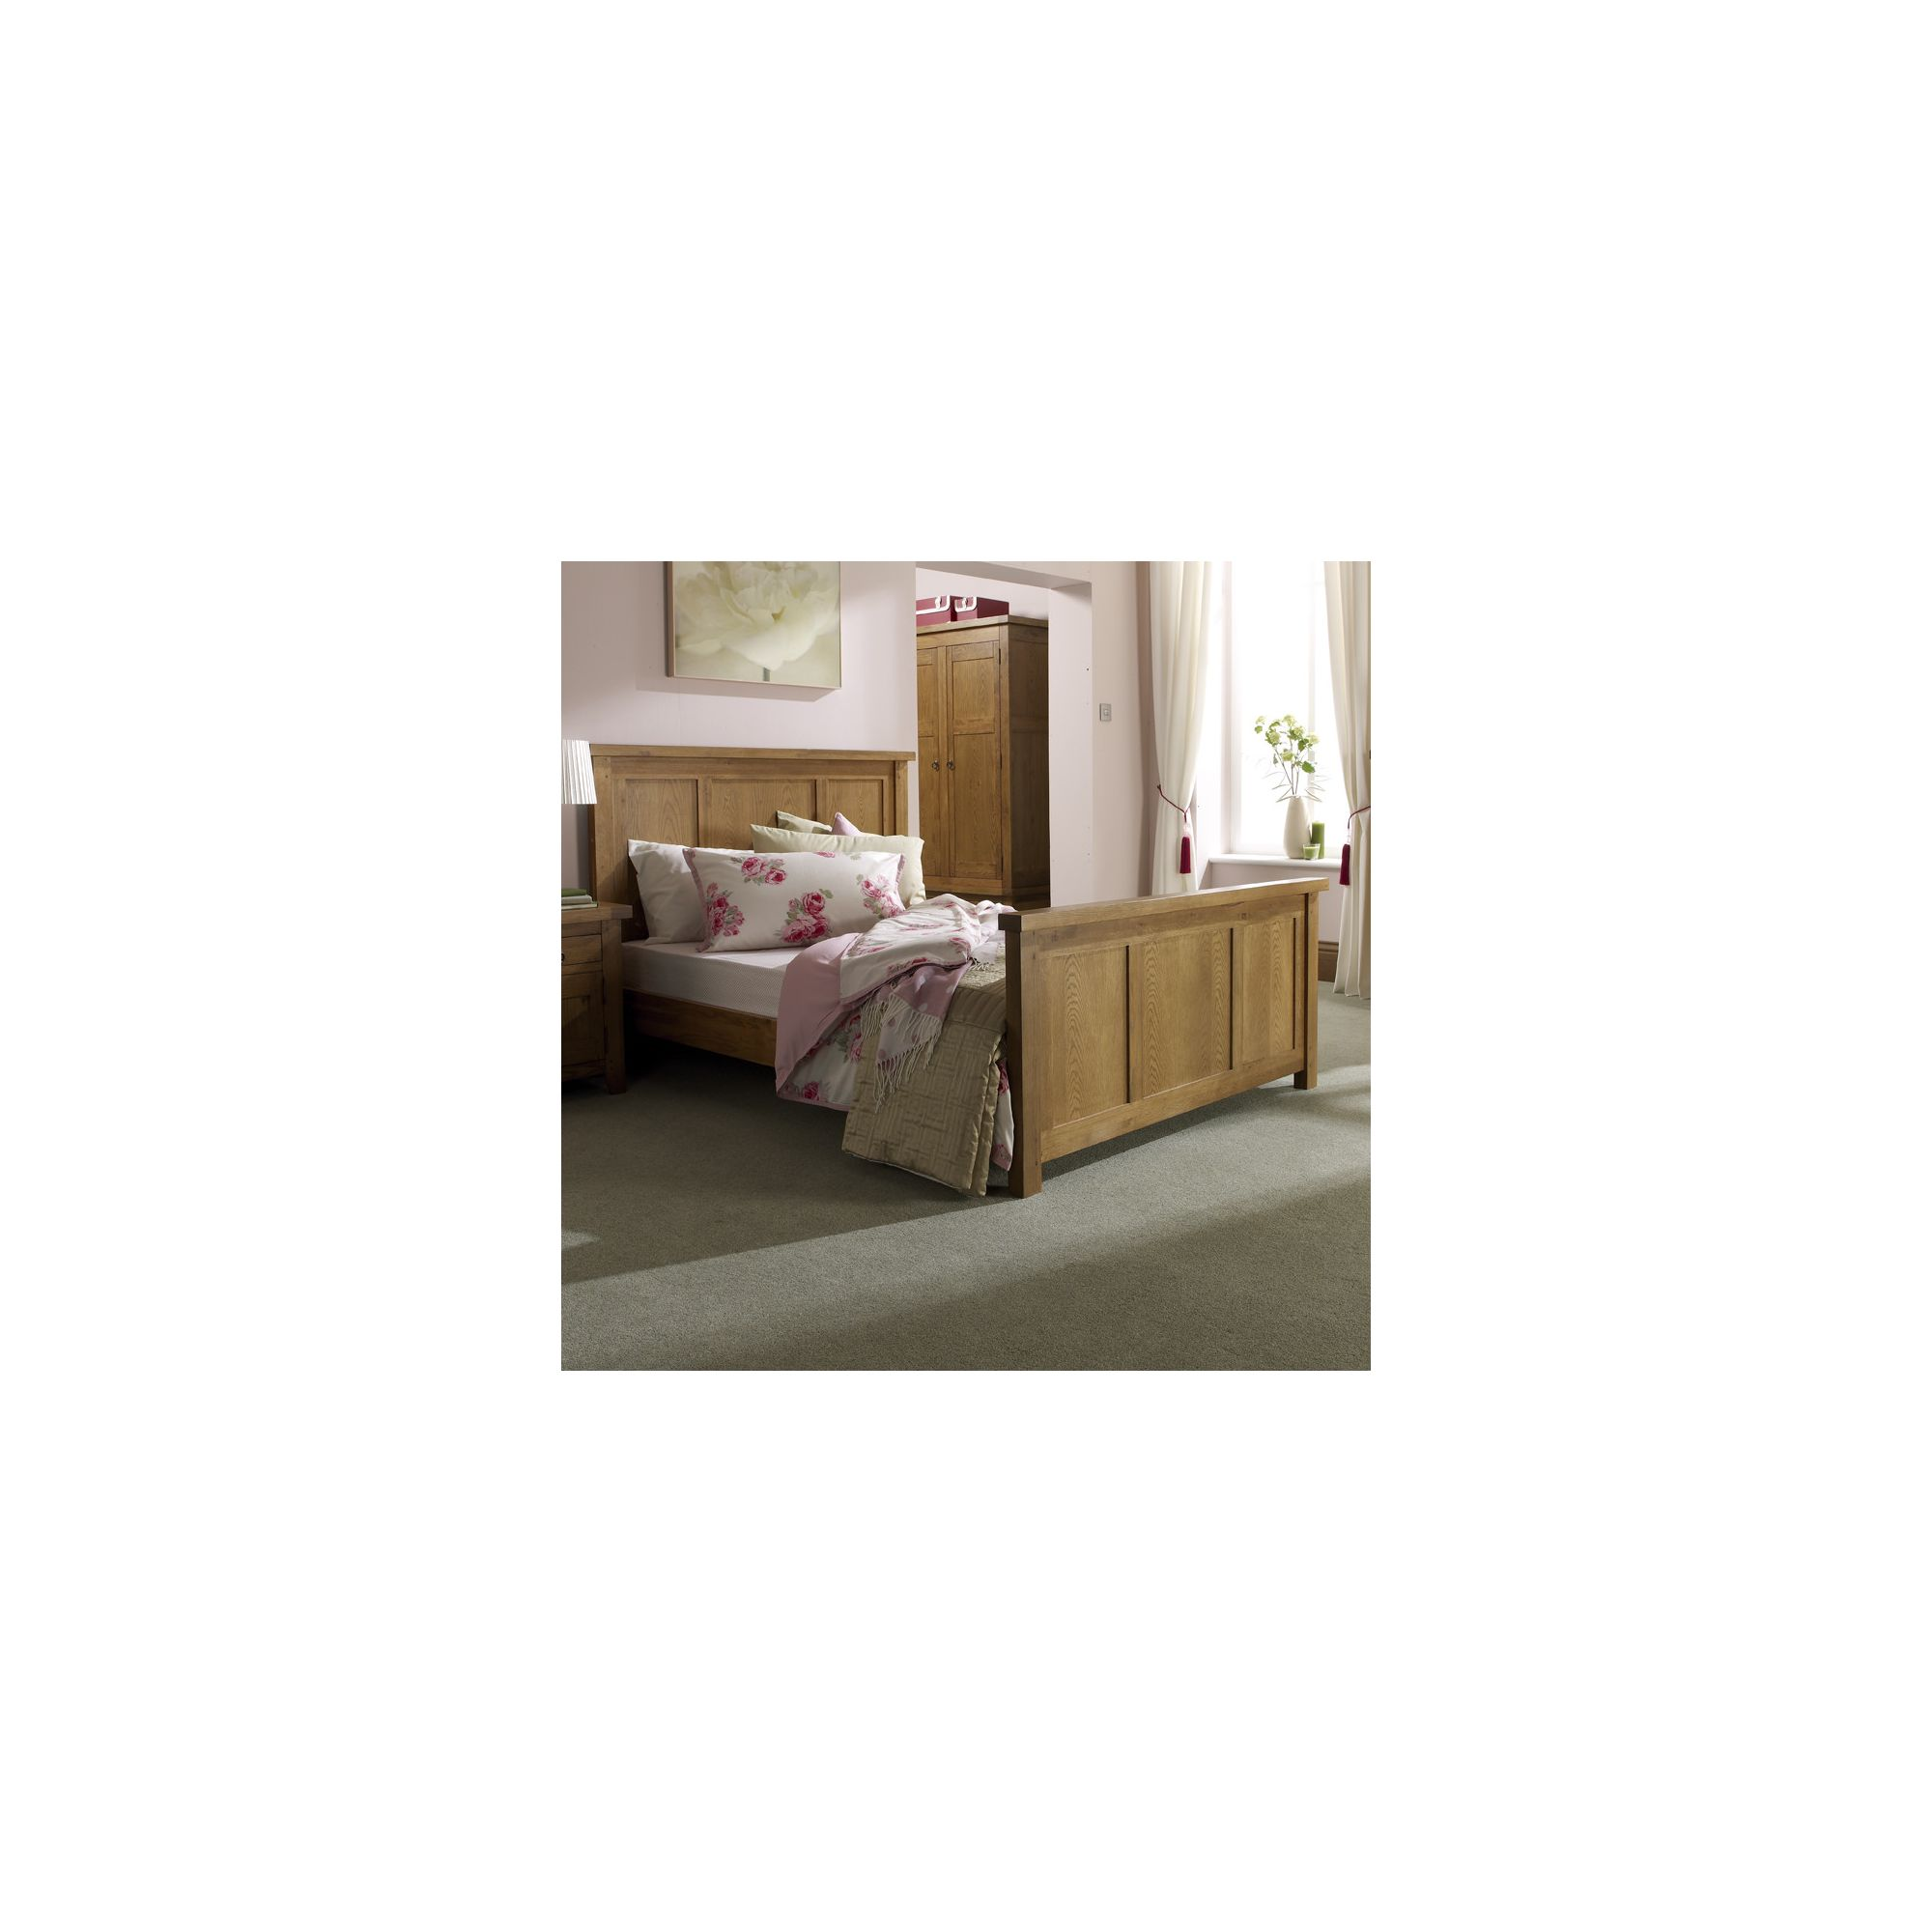 Home Zone Hasting Bed - King at Tesco Direct